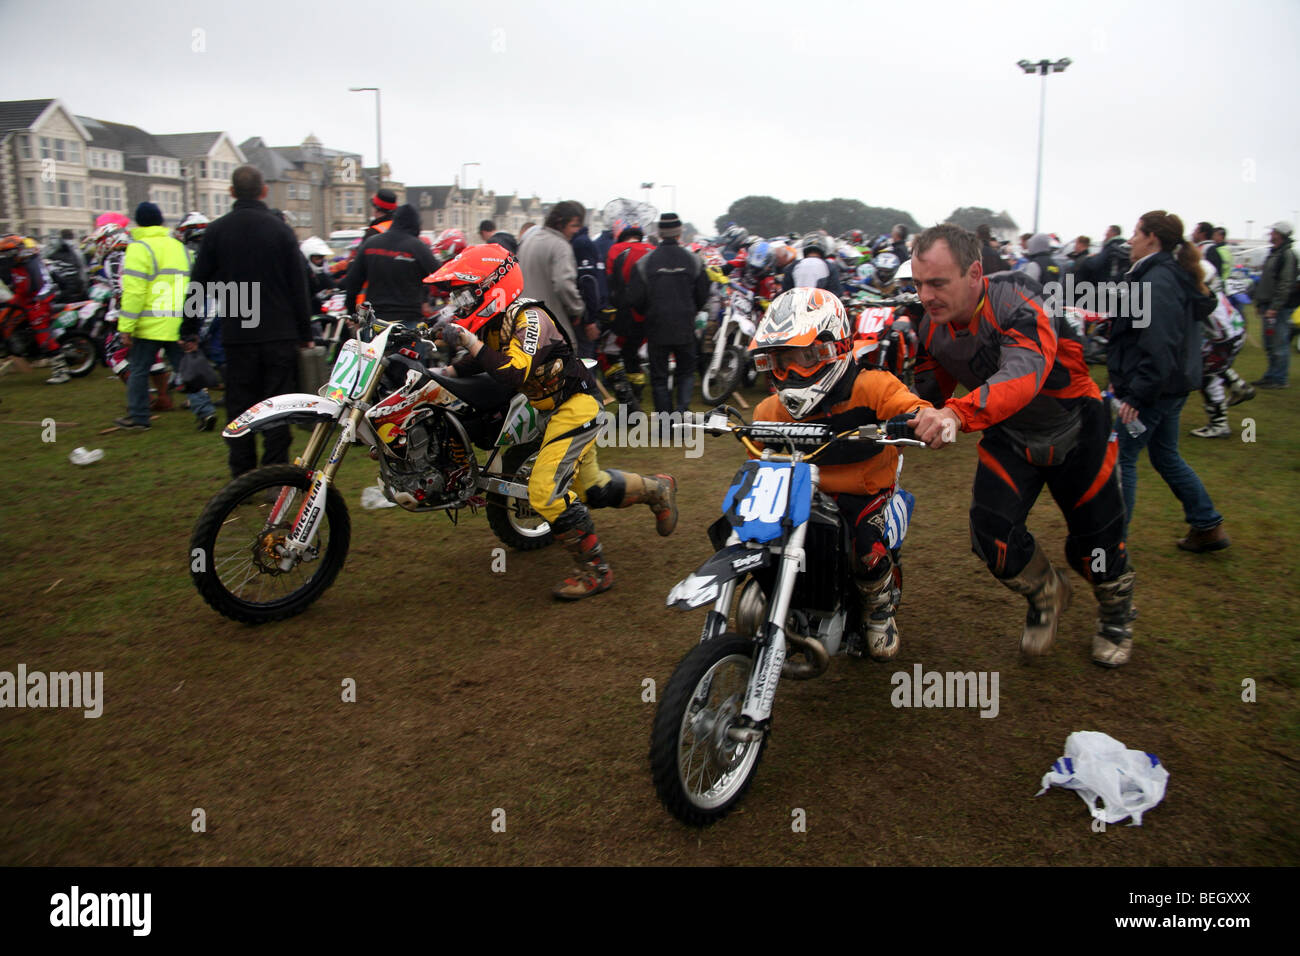 Participants at Weston Beach Race waiting for the race to start - Stock Image